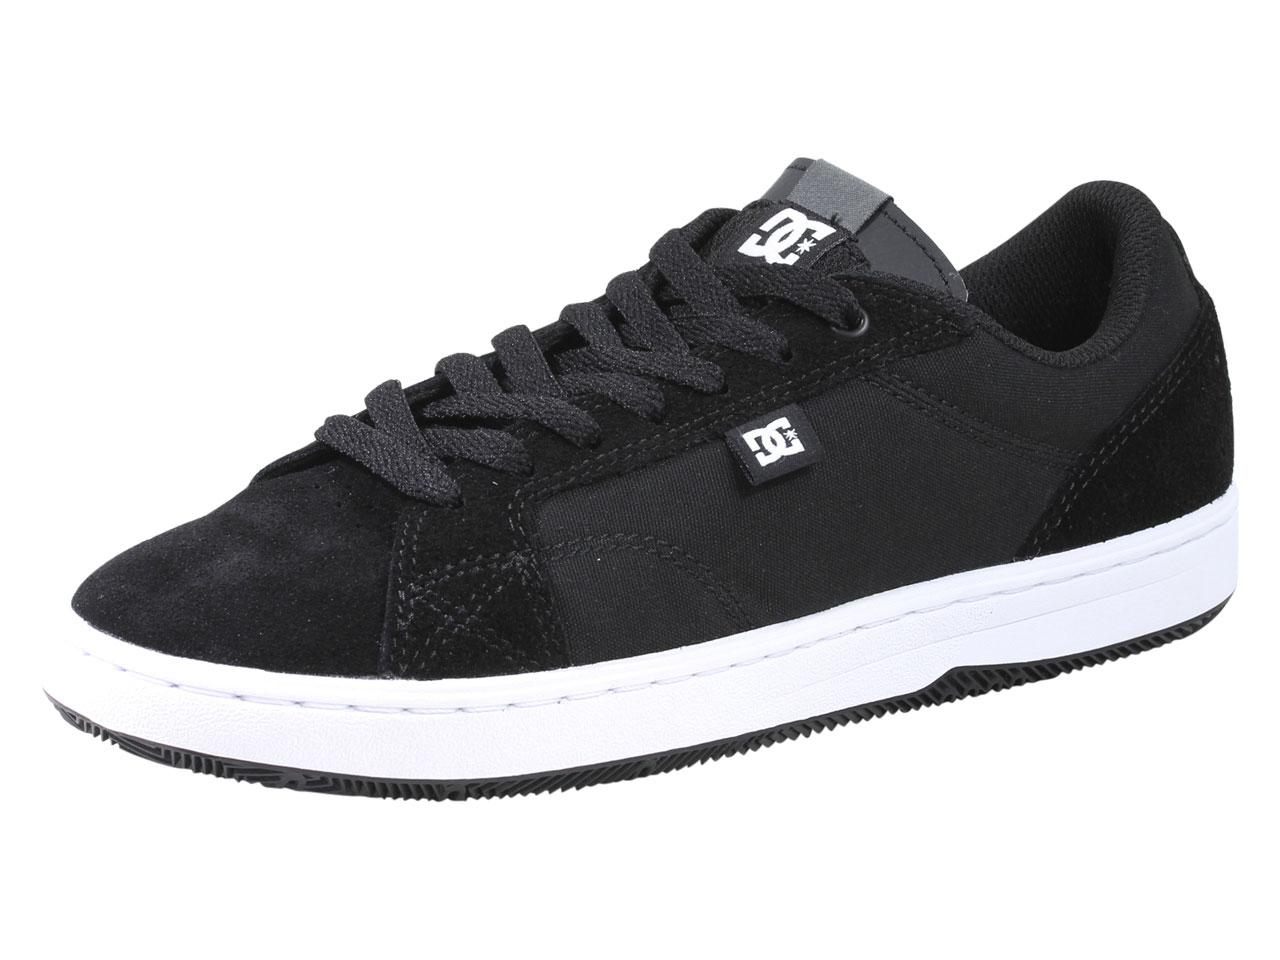 Image of DC Men's Astor Skateboarding Sneakers Shoes - Black - 9 D(M) US